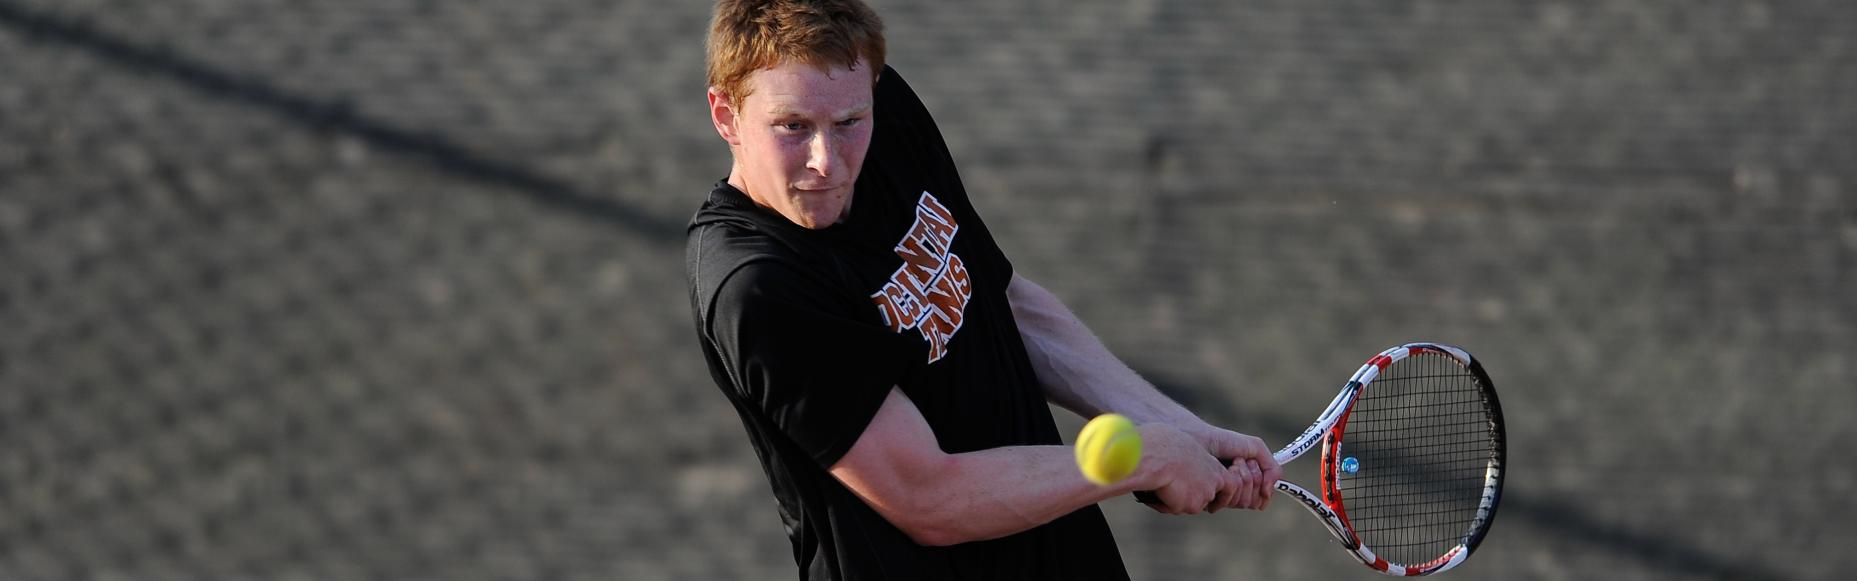 MEN'S TENNIS RETURNS FROM BREAK, DOESN'T MISS A BEAT IN 7-2 VICTORY OVER SALISBURY